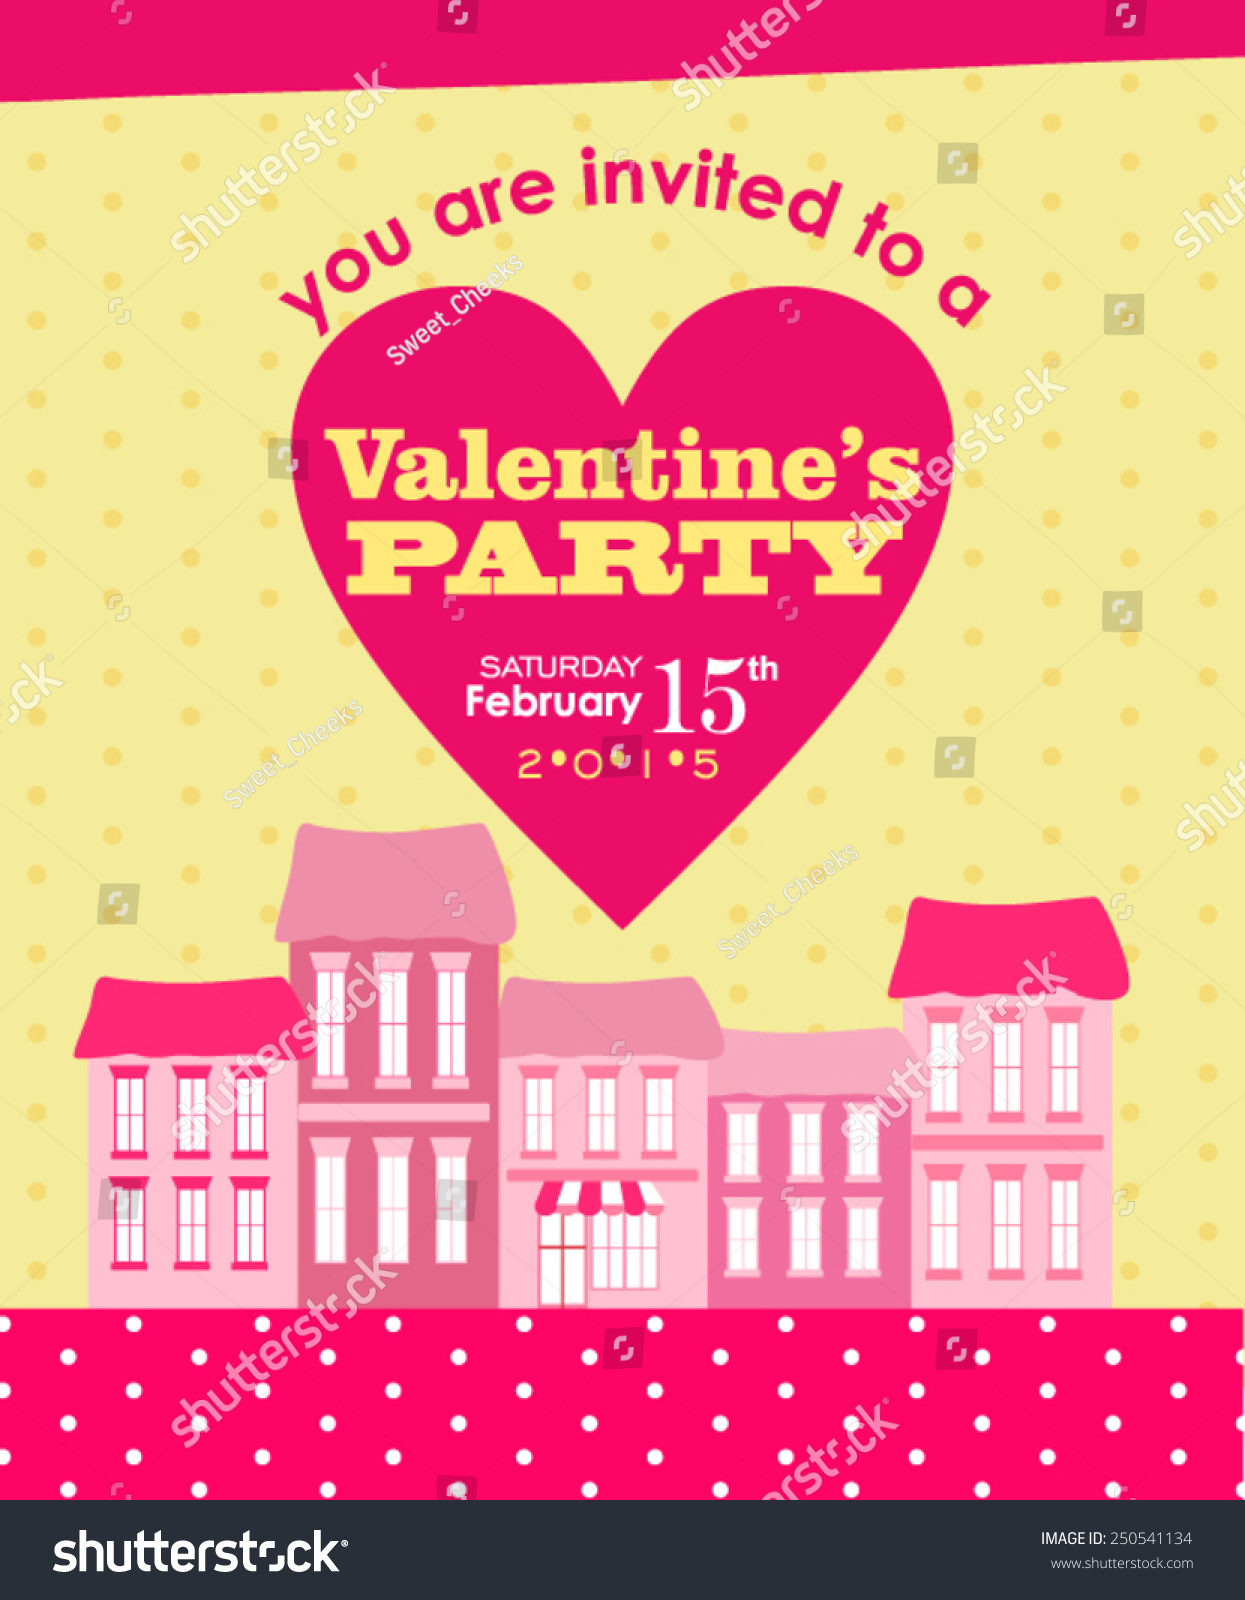 Valentines Party Invitation Stock Vector 250541134 - Shutterstock